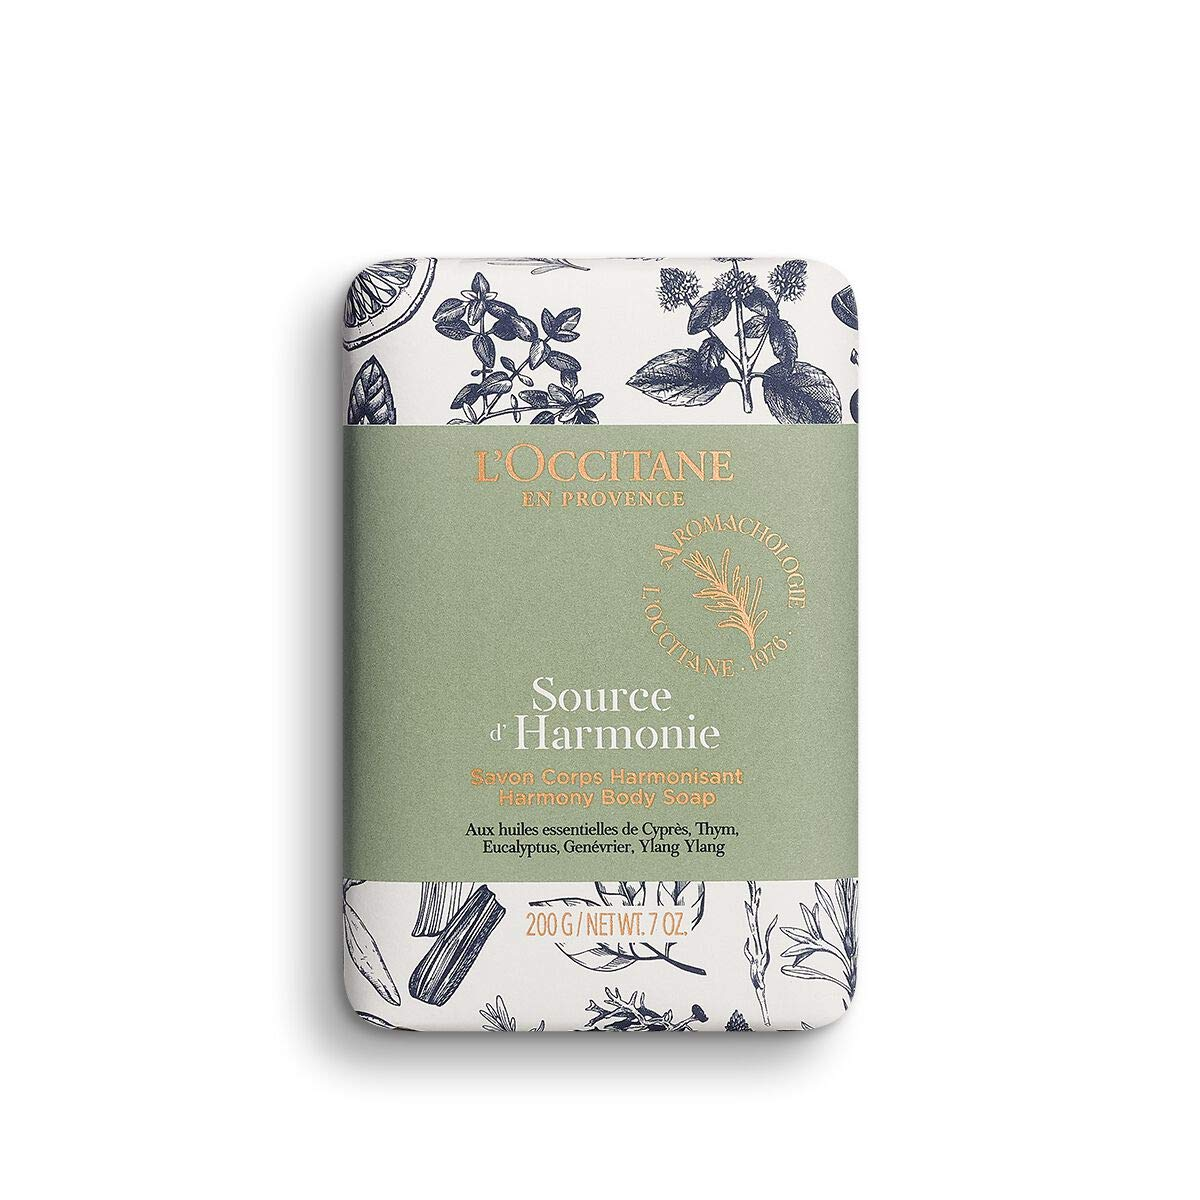 L'Occitane Source d'Harmonie Harmony Soap, 7 oz